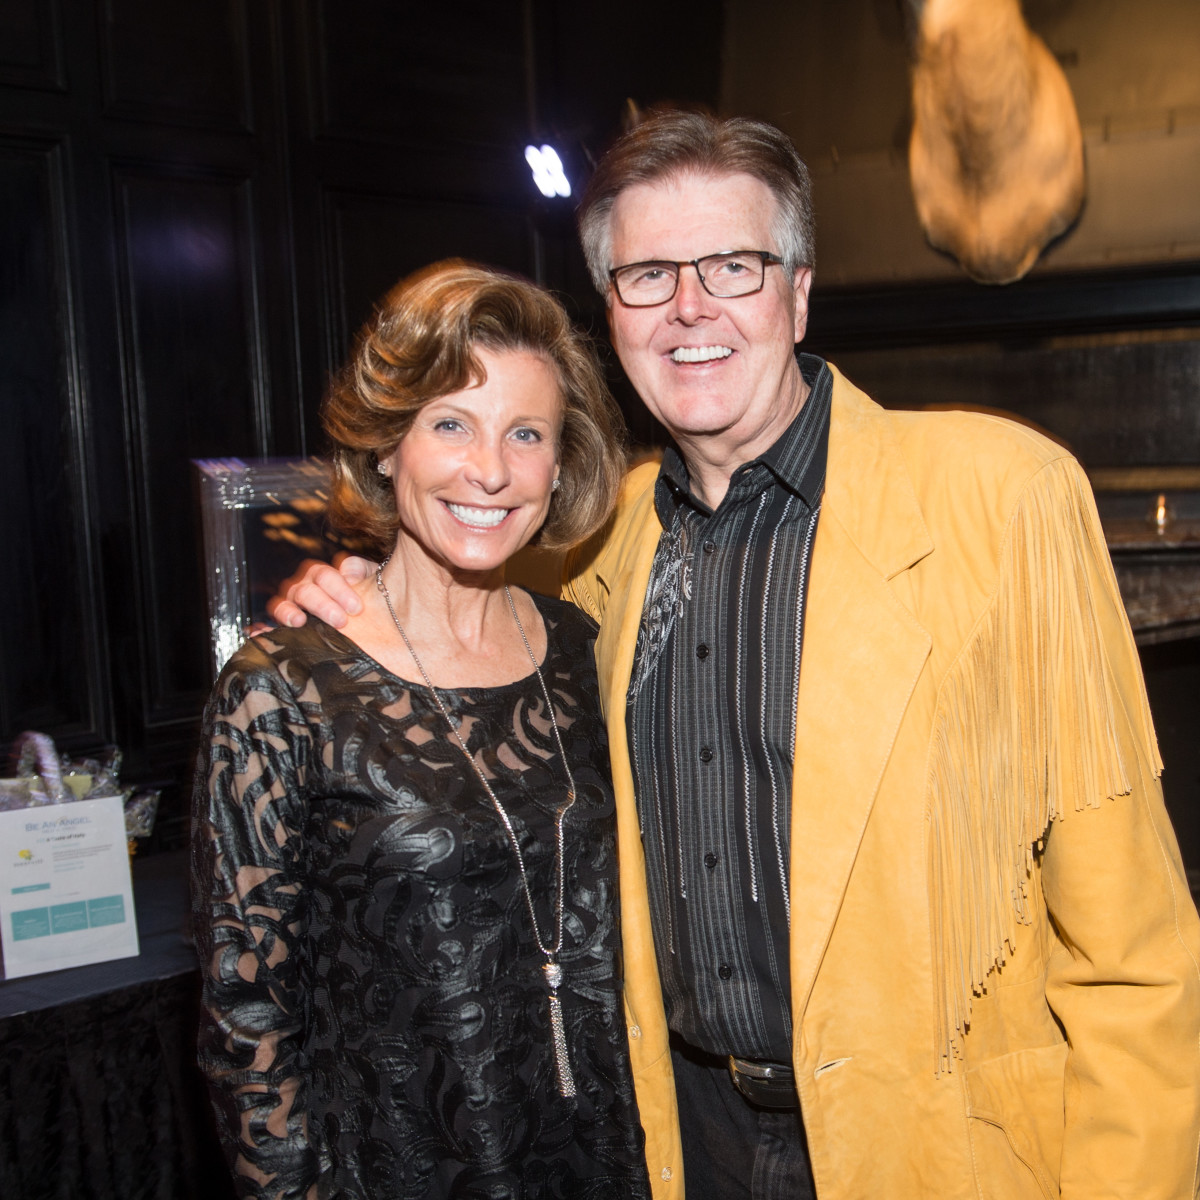 Be An Angel gala 5/16. Jan Patrick, Dan Patrick